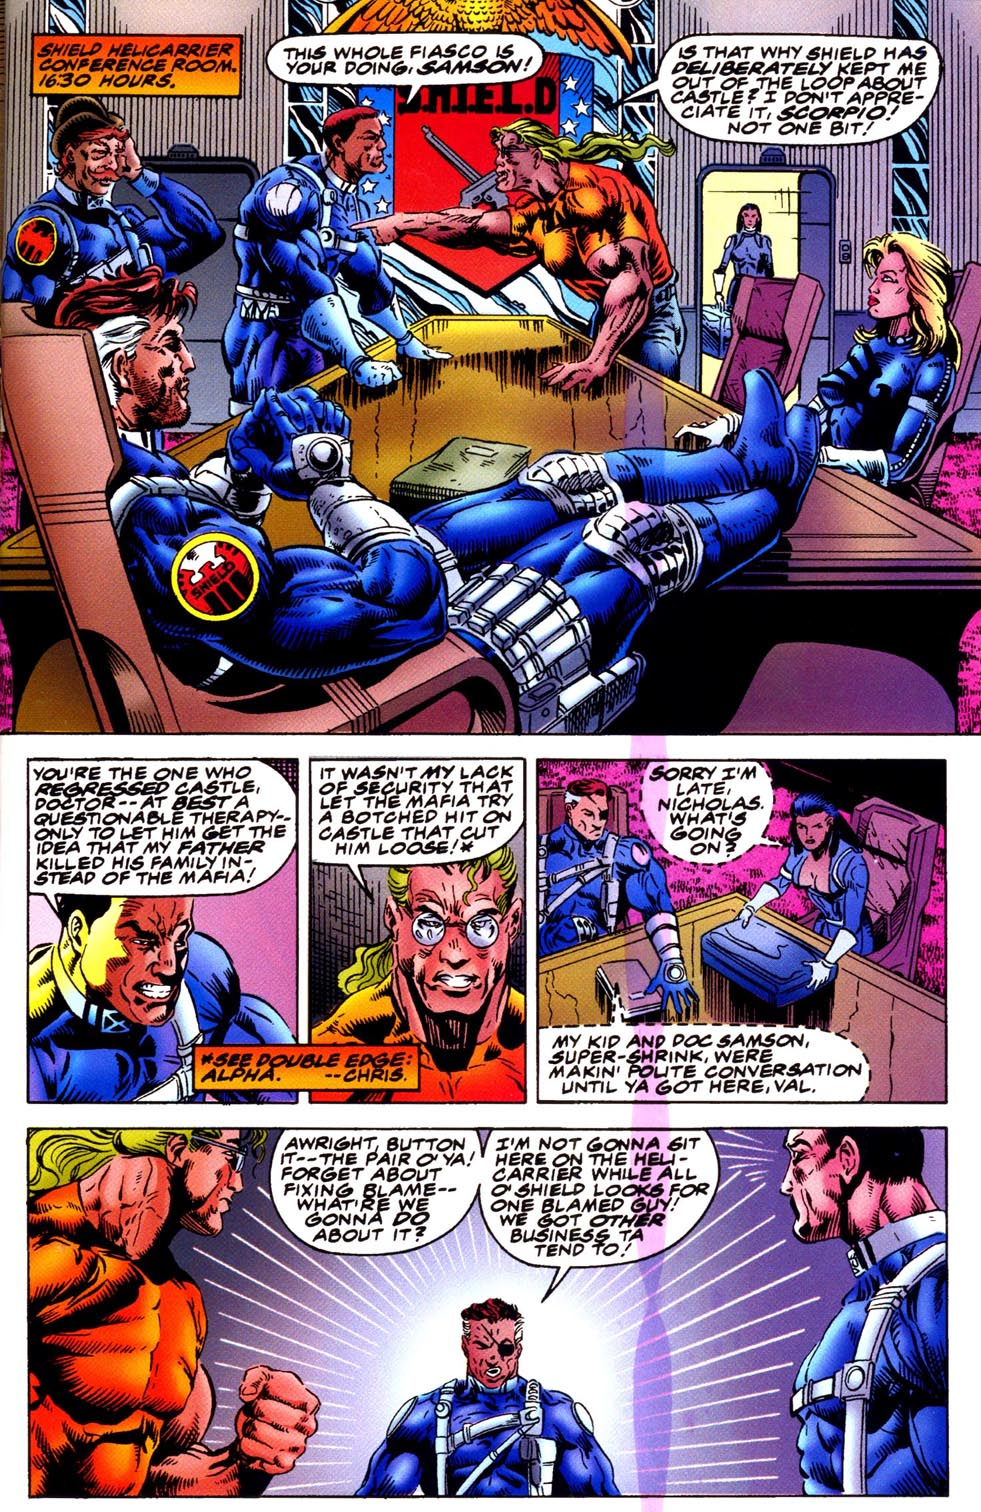 Read online Double Edge comic -  Issue # Issue Omega - 10